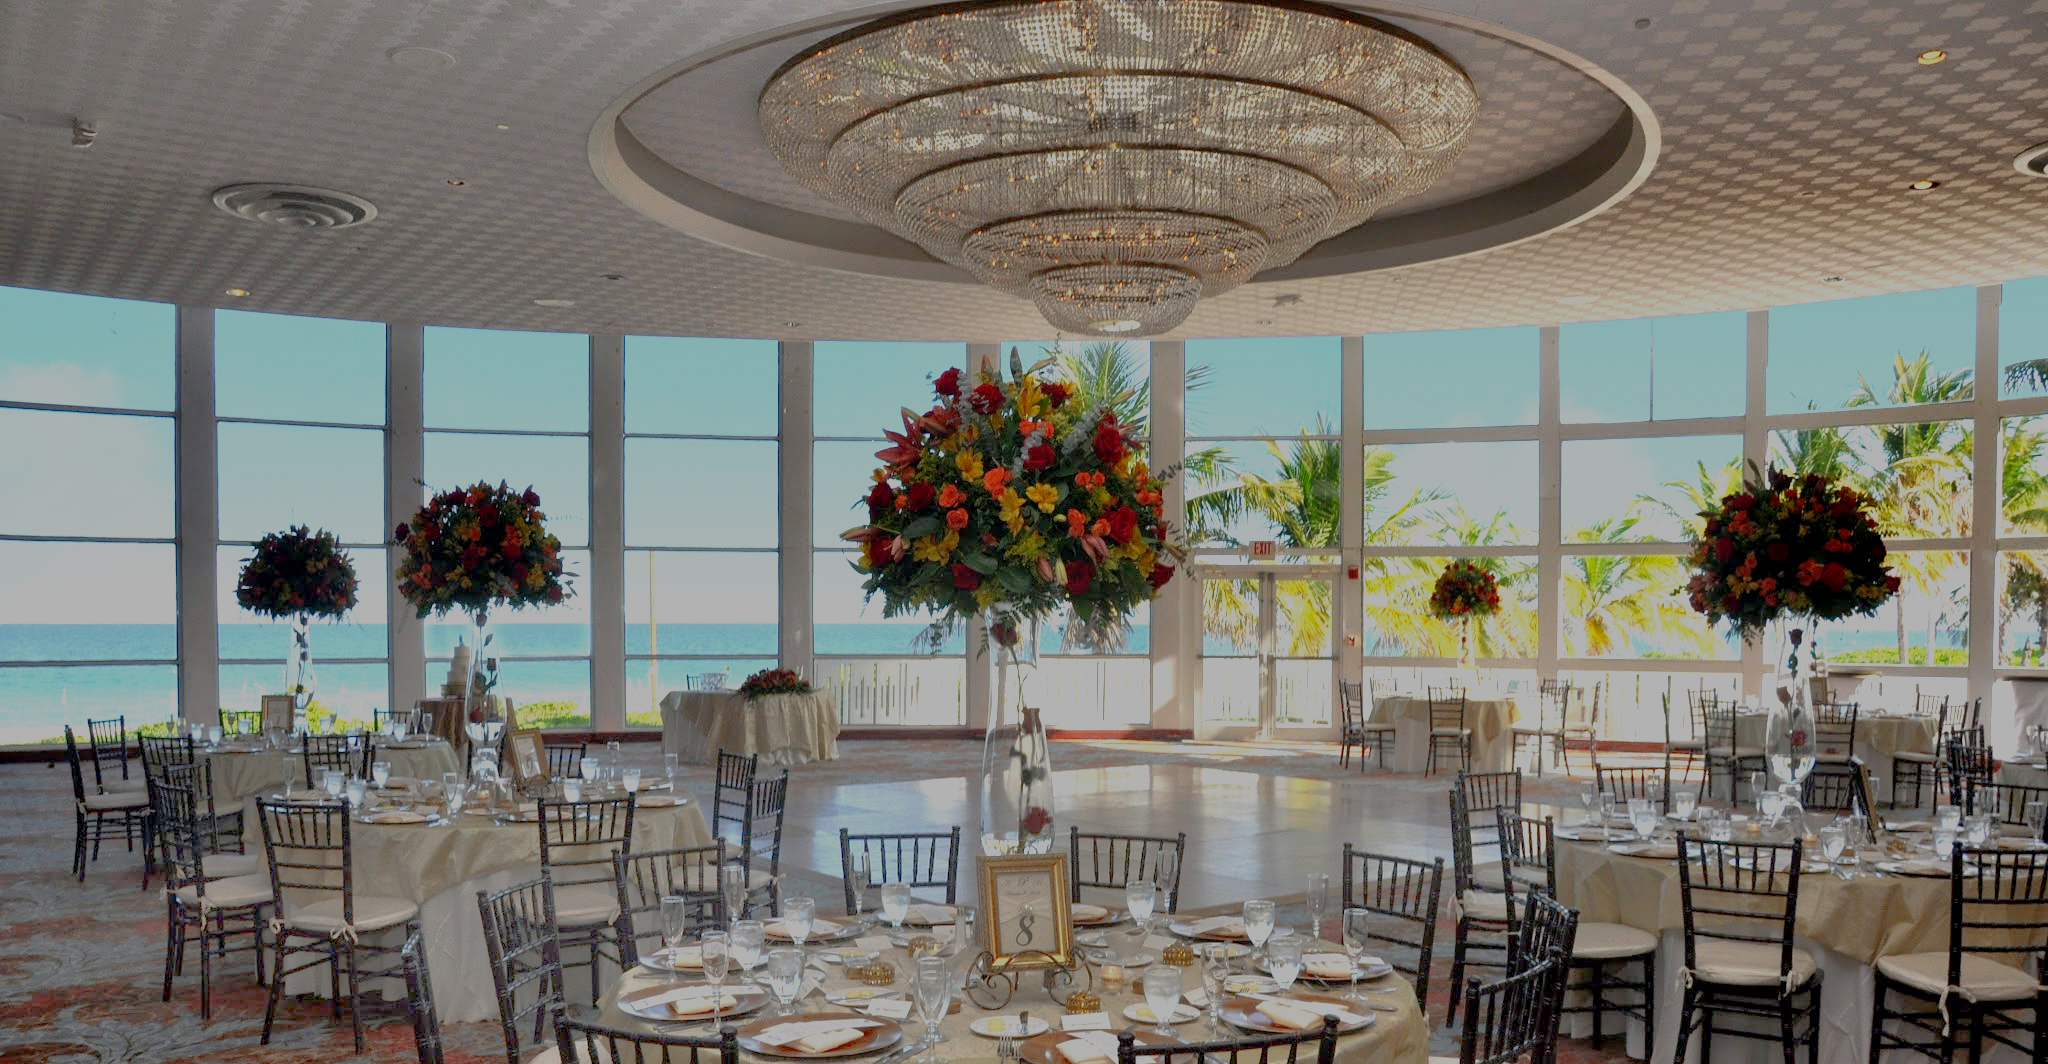 Wedding setting inside the Richelieu Ballroom at the Deauville Beach Resort